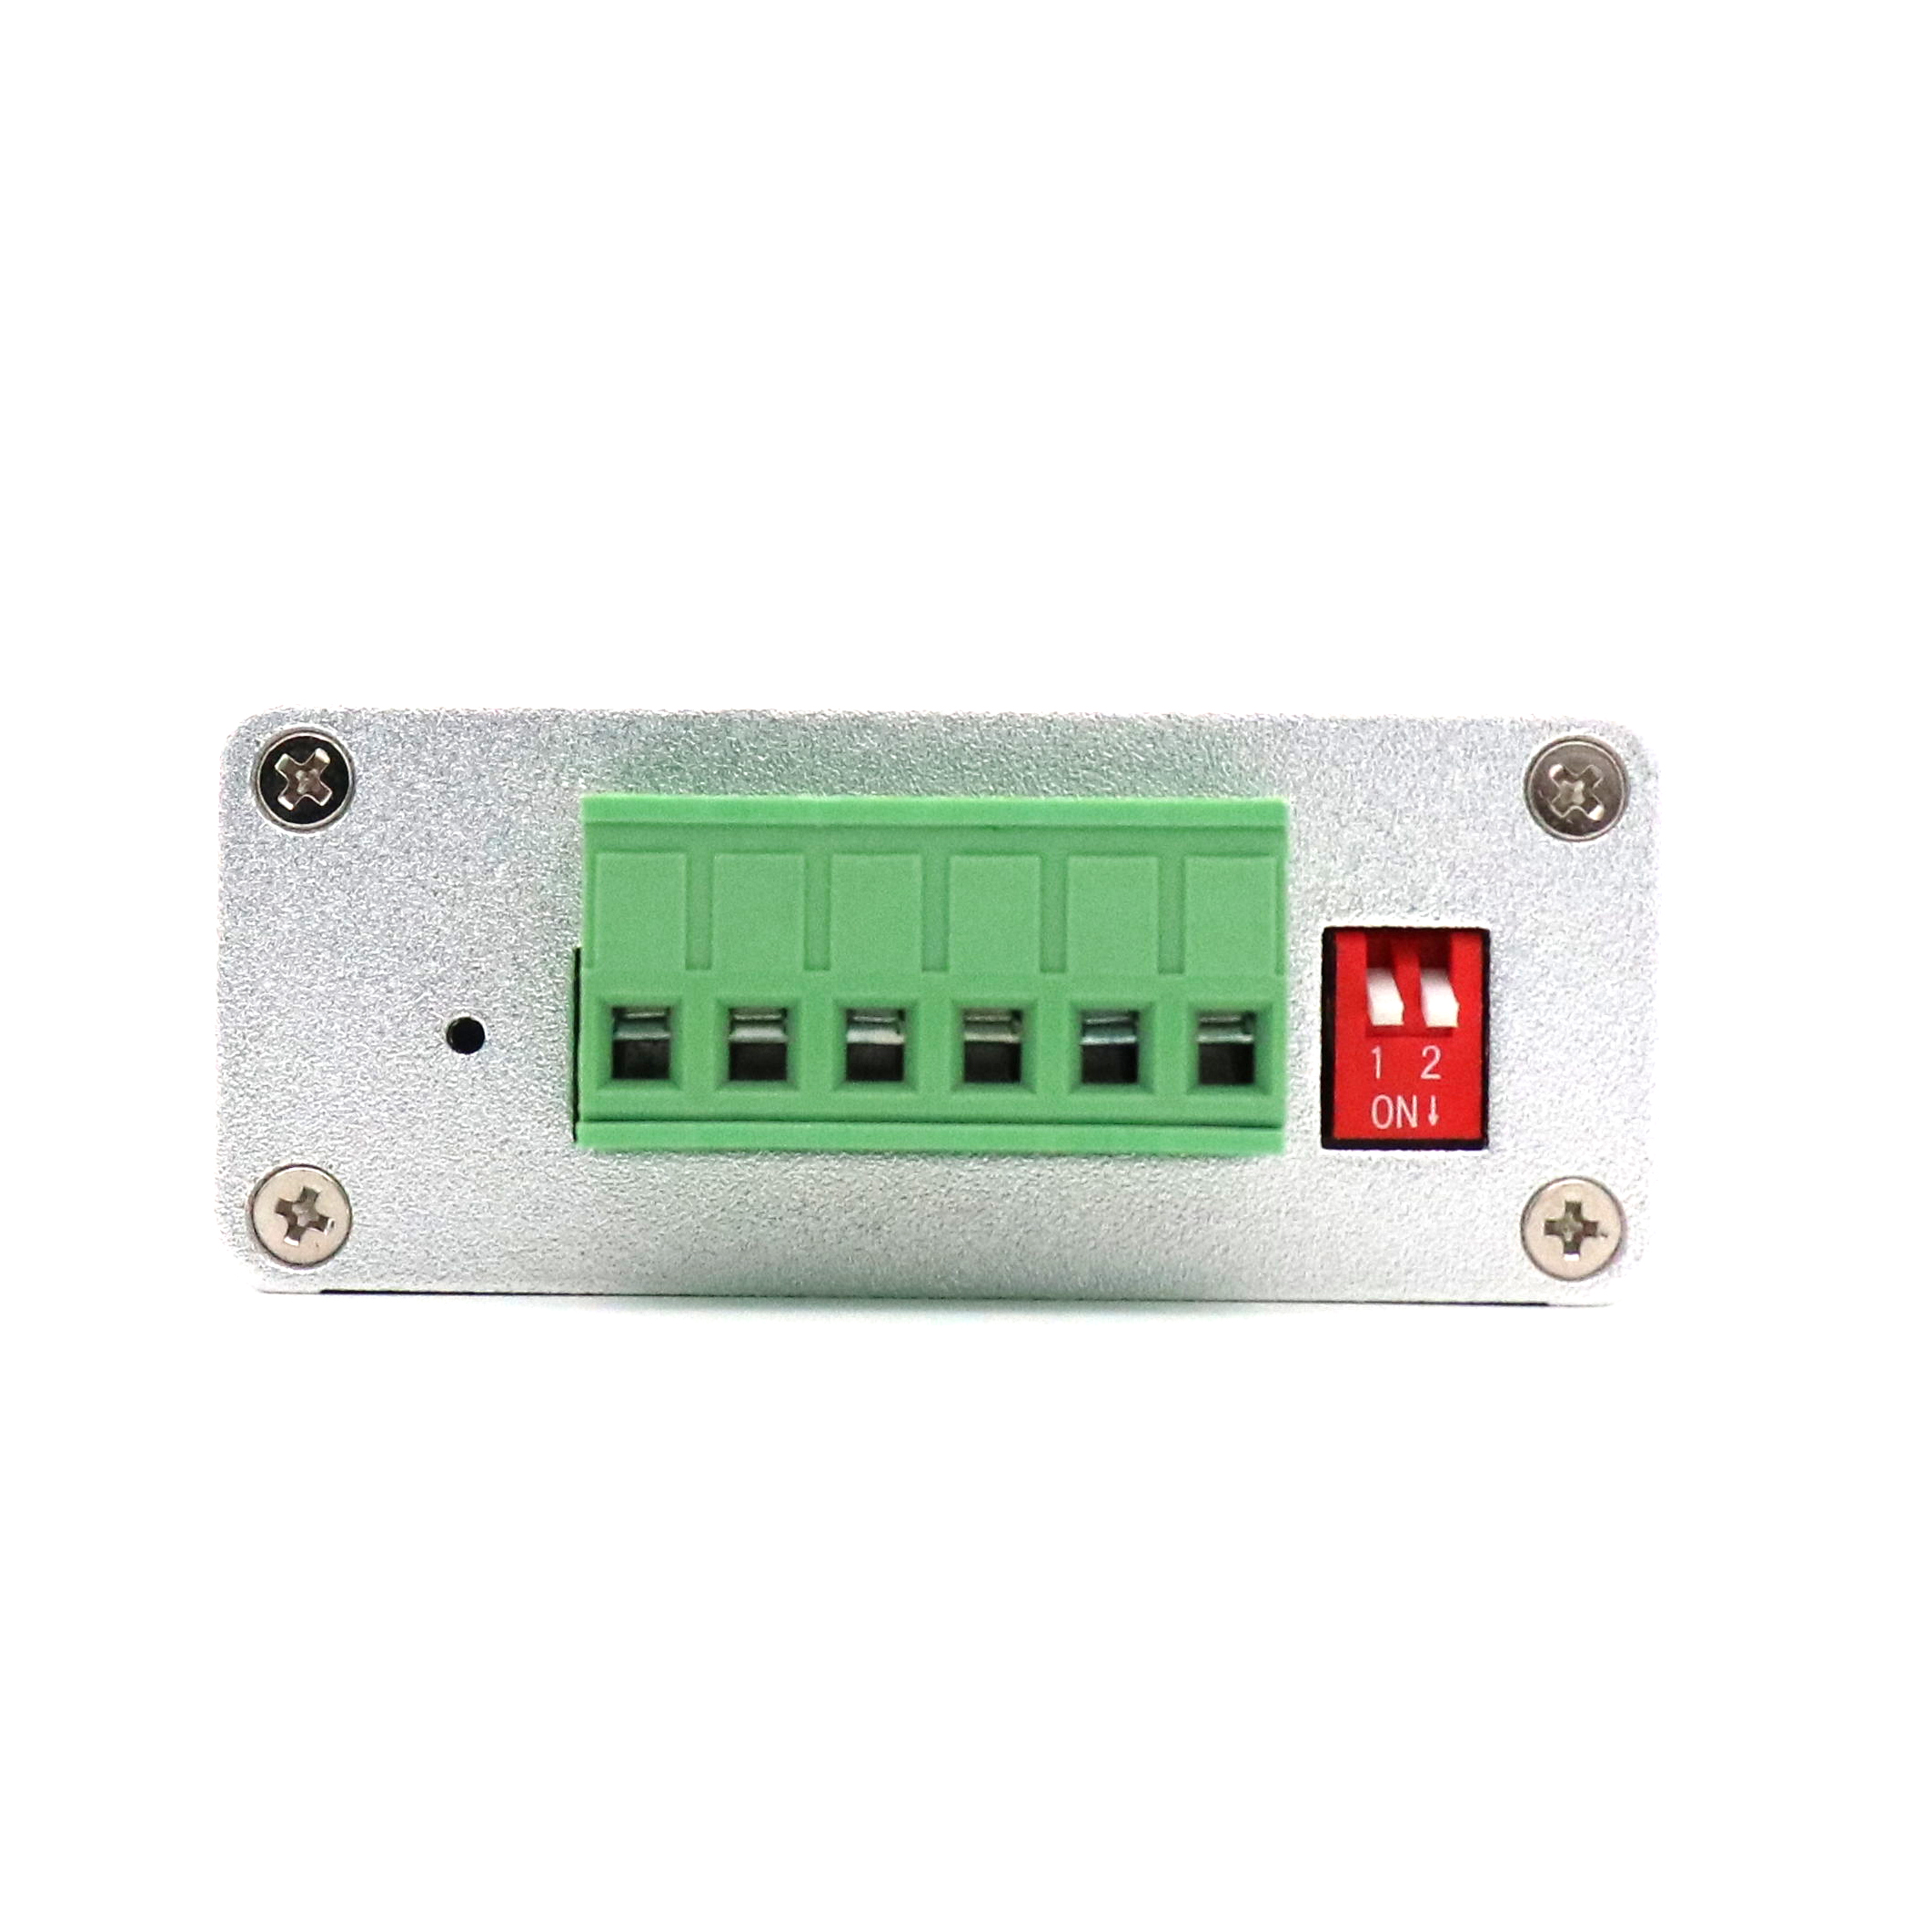 Industrial CAN-bus communication interface card